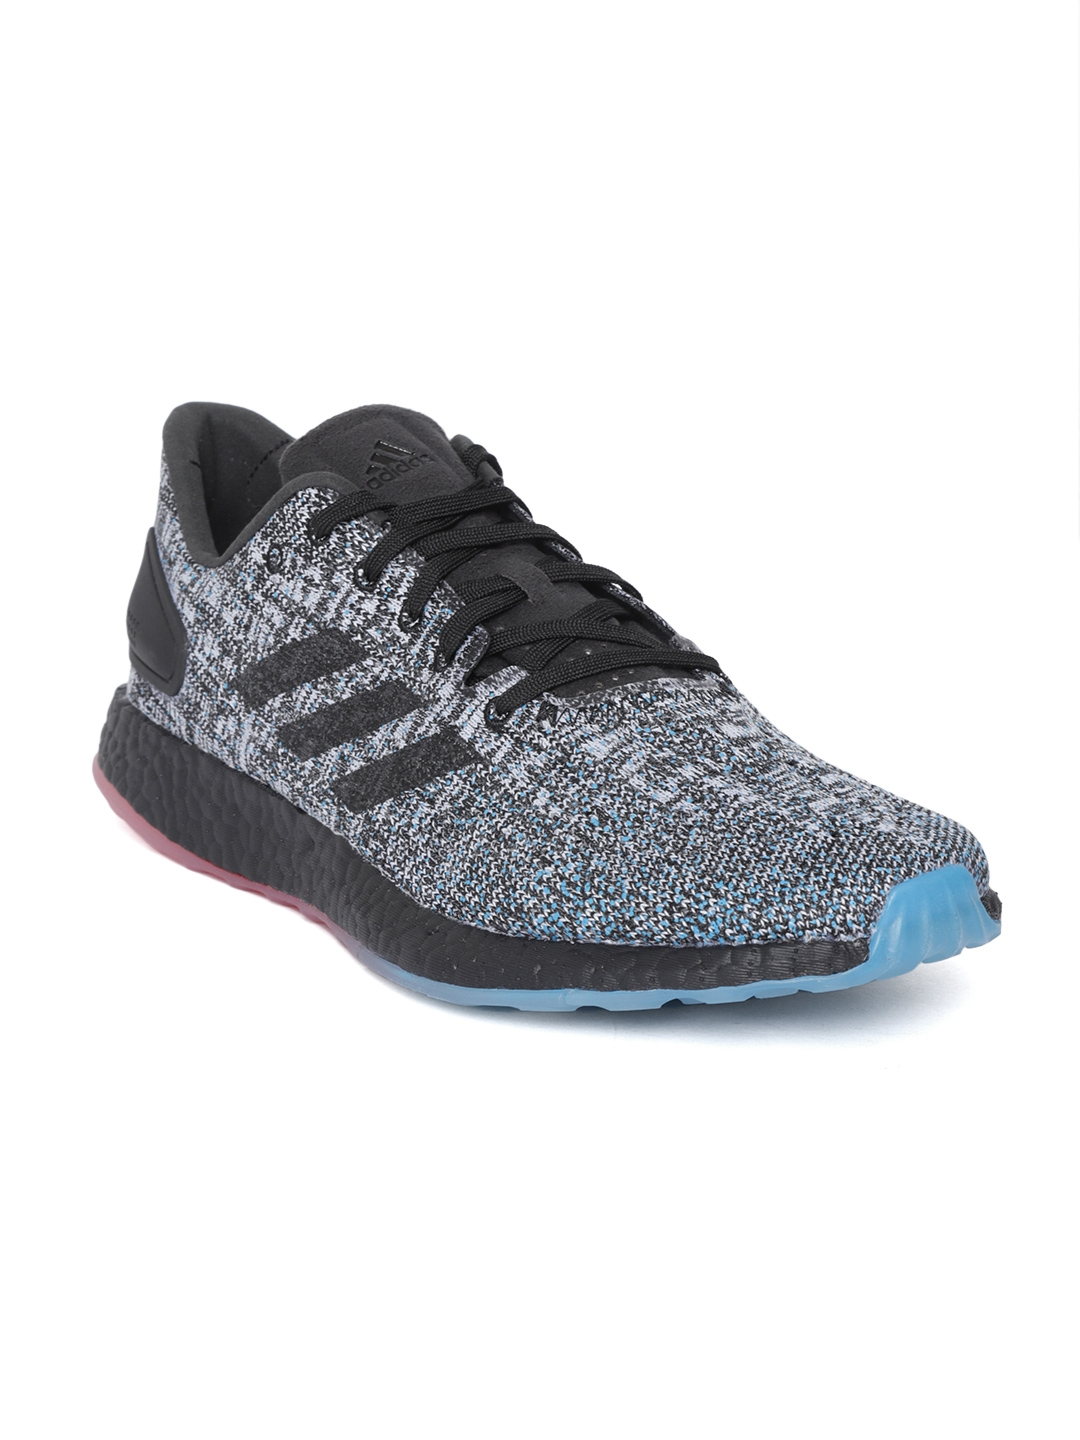 7f579ce92ca Buy ADIDAS Men Black   Grey Pureboost DPR LTD Running Shoes - Sports ...